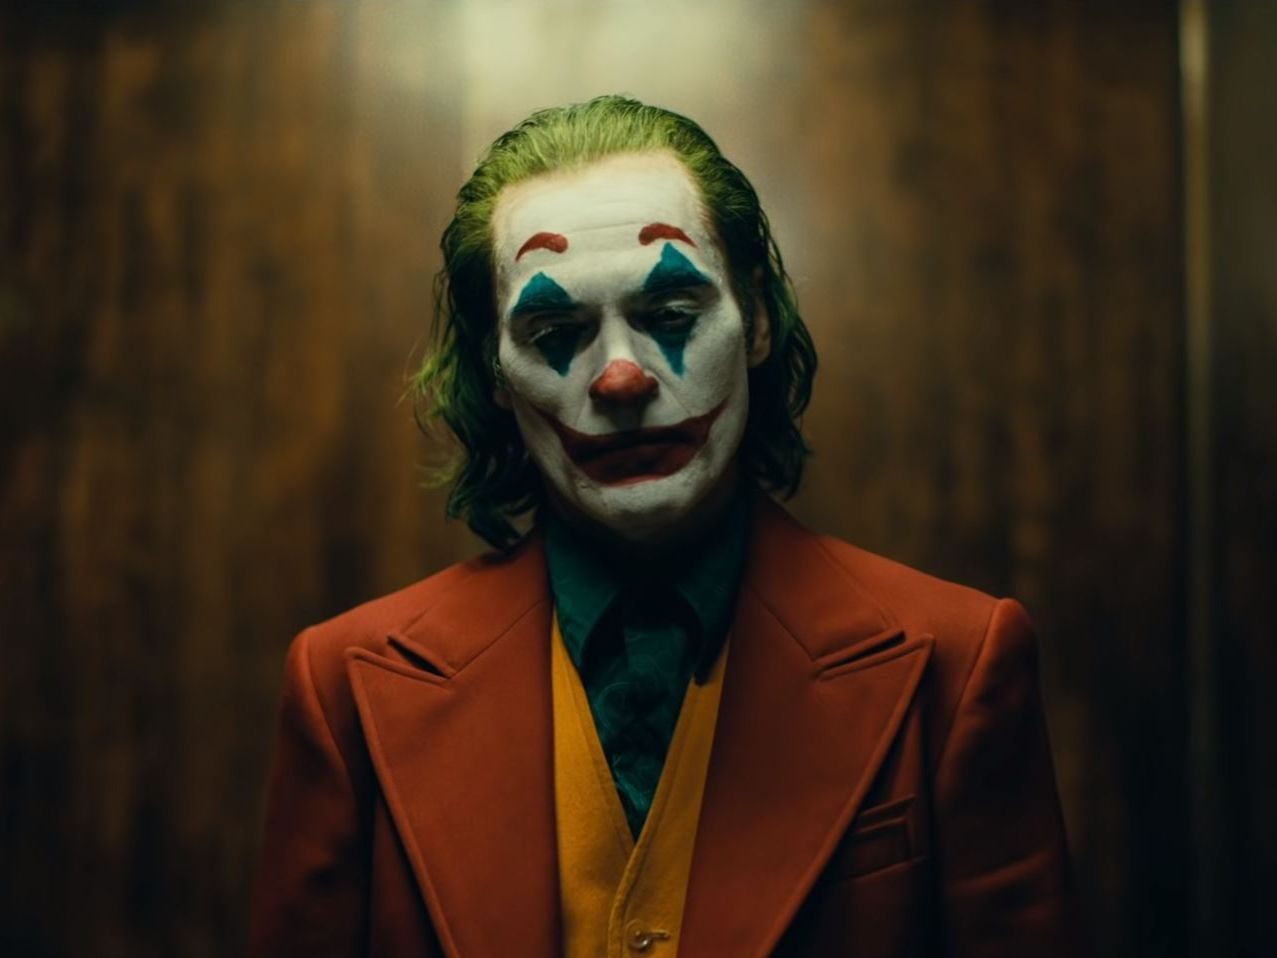 Joker Trailer: Joaquin Phoenix As Joker Will Leave You Asking For More